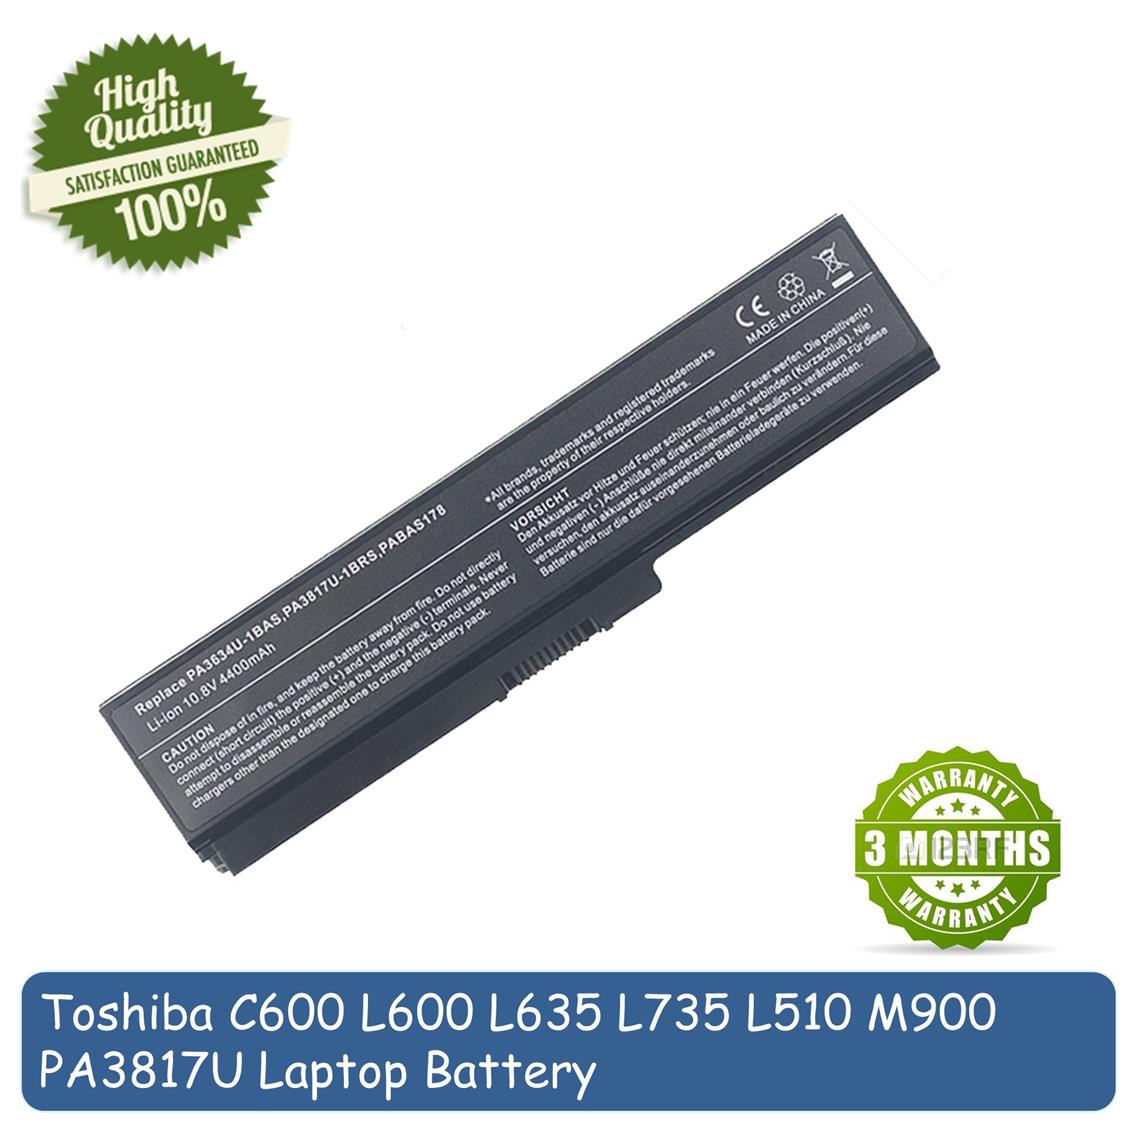 Toshiba Satellite PA3817 PA3817U L740 L745 L745D L775 Laptop Battery